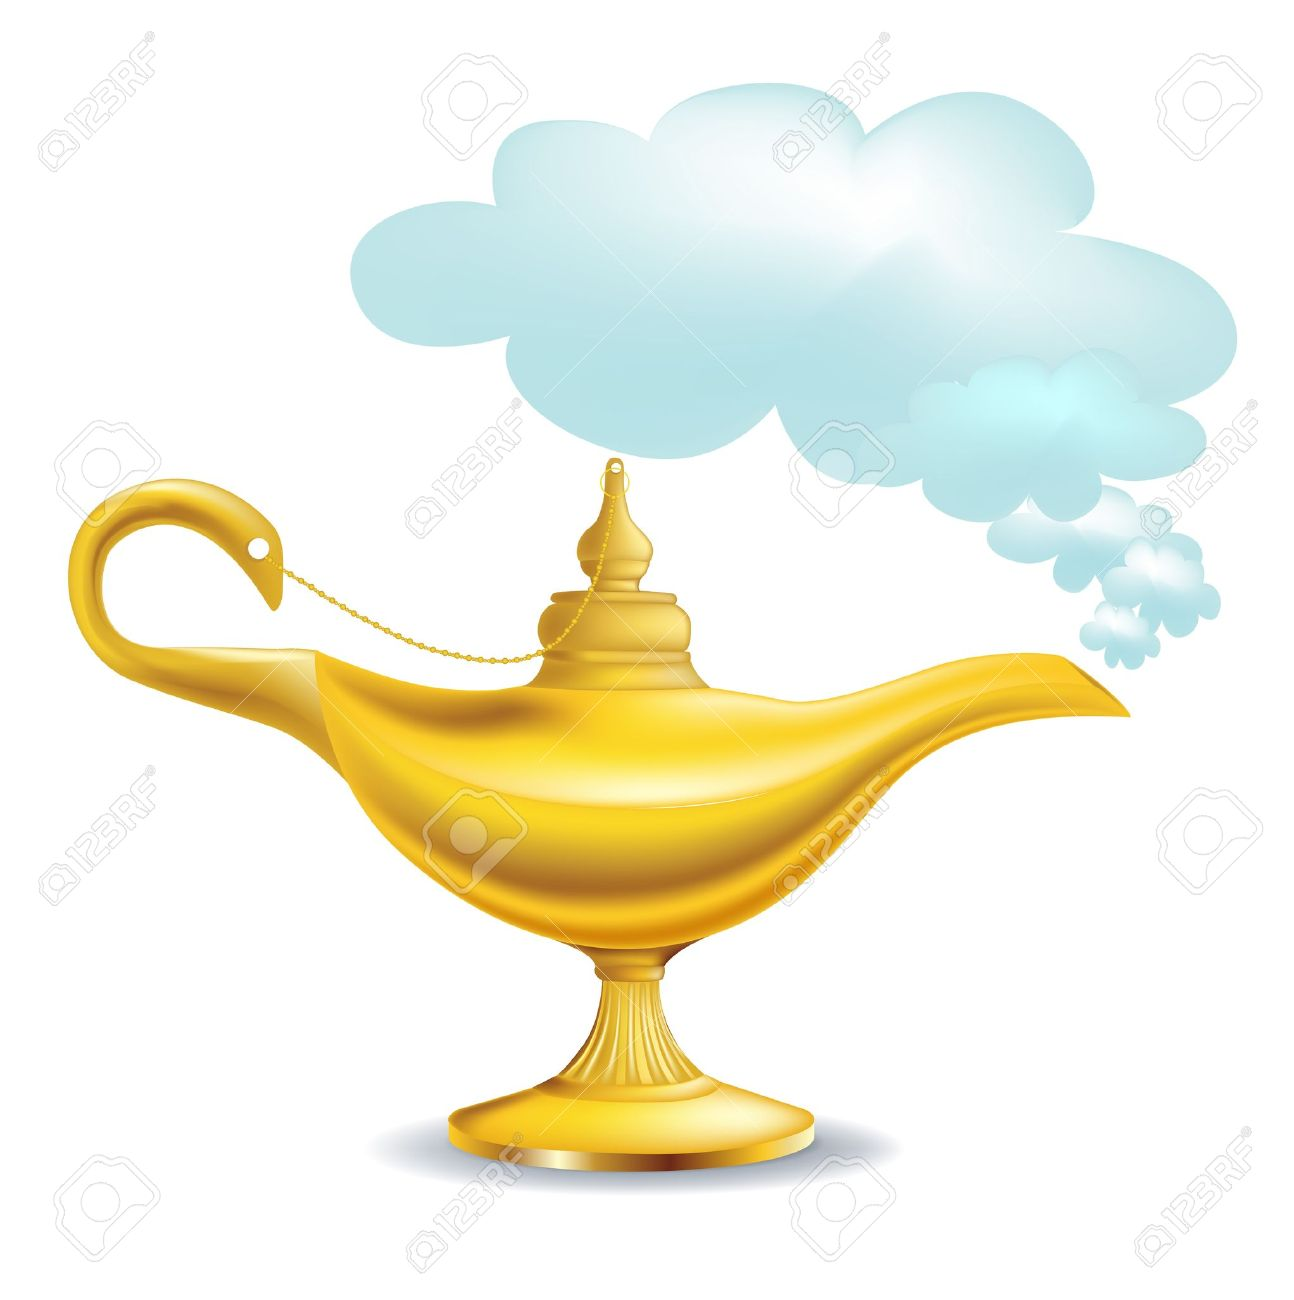 golden magic lamp with cloud isolated.